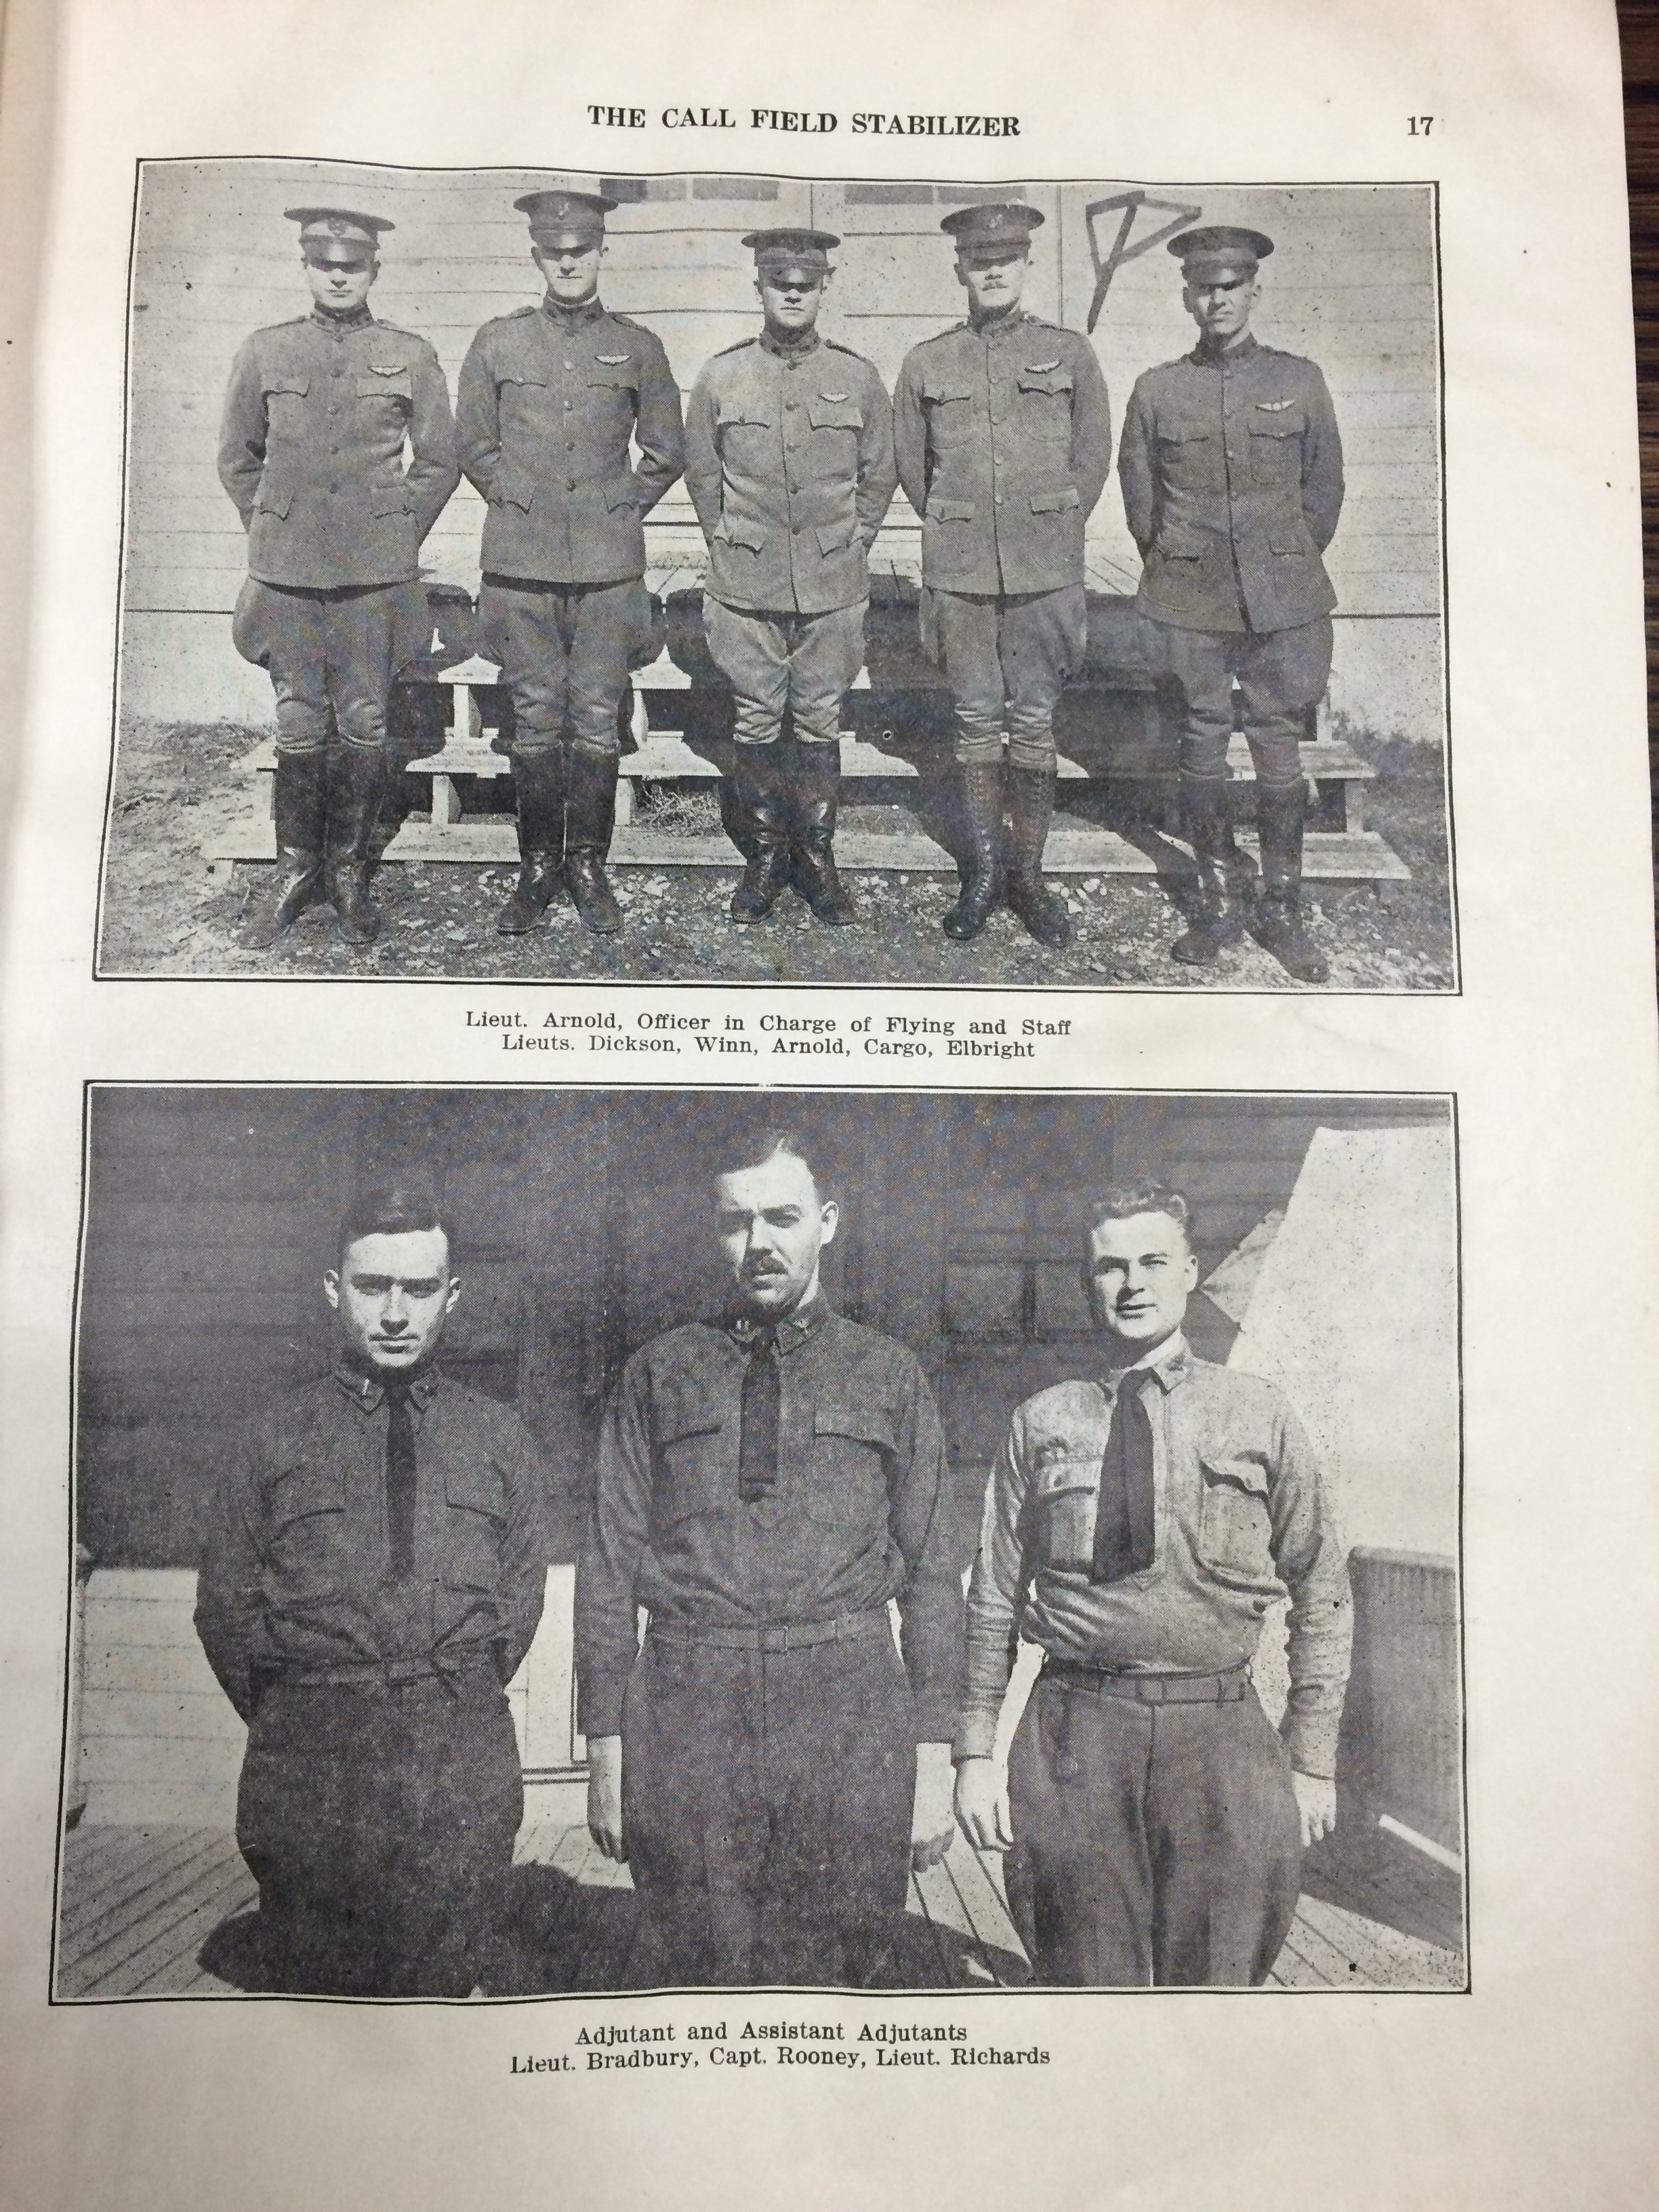 Image 17 December 15, 1918 Call Field Stabilizer